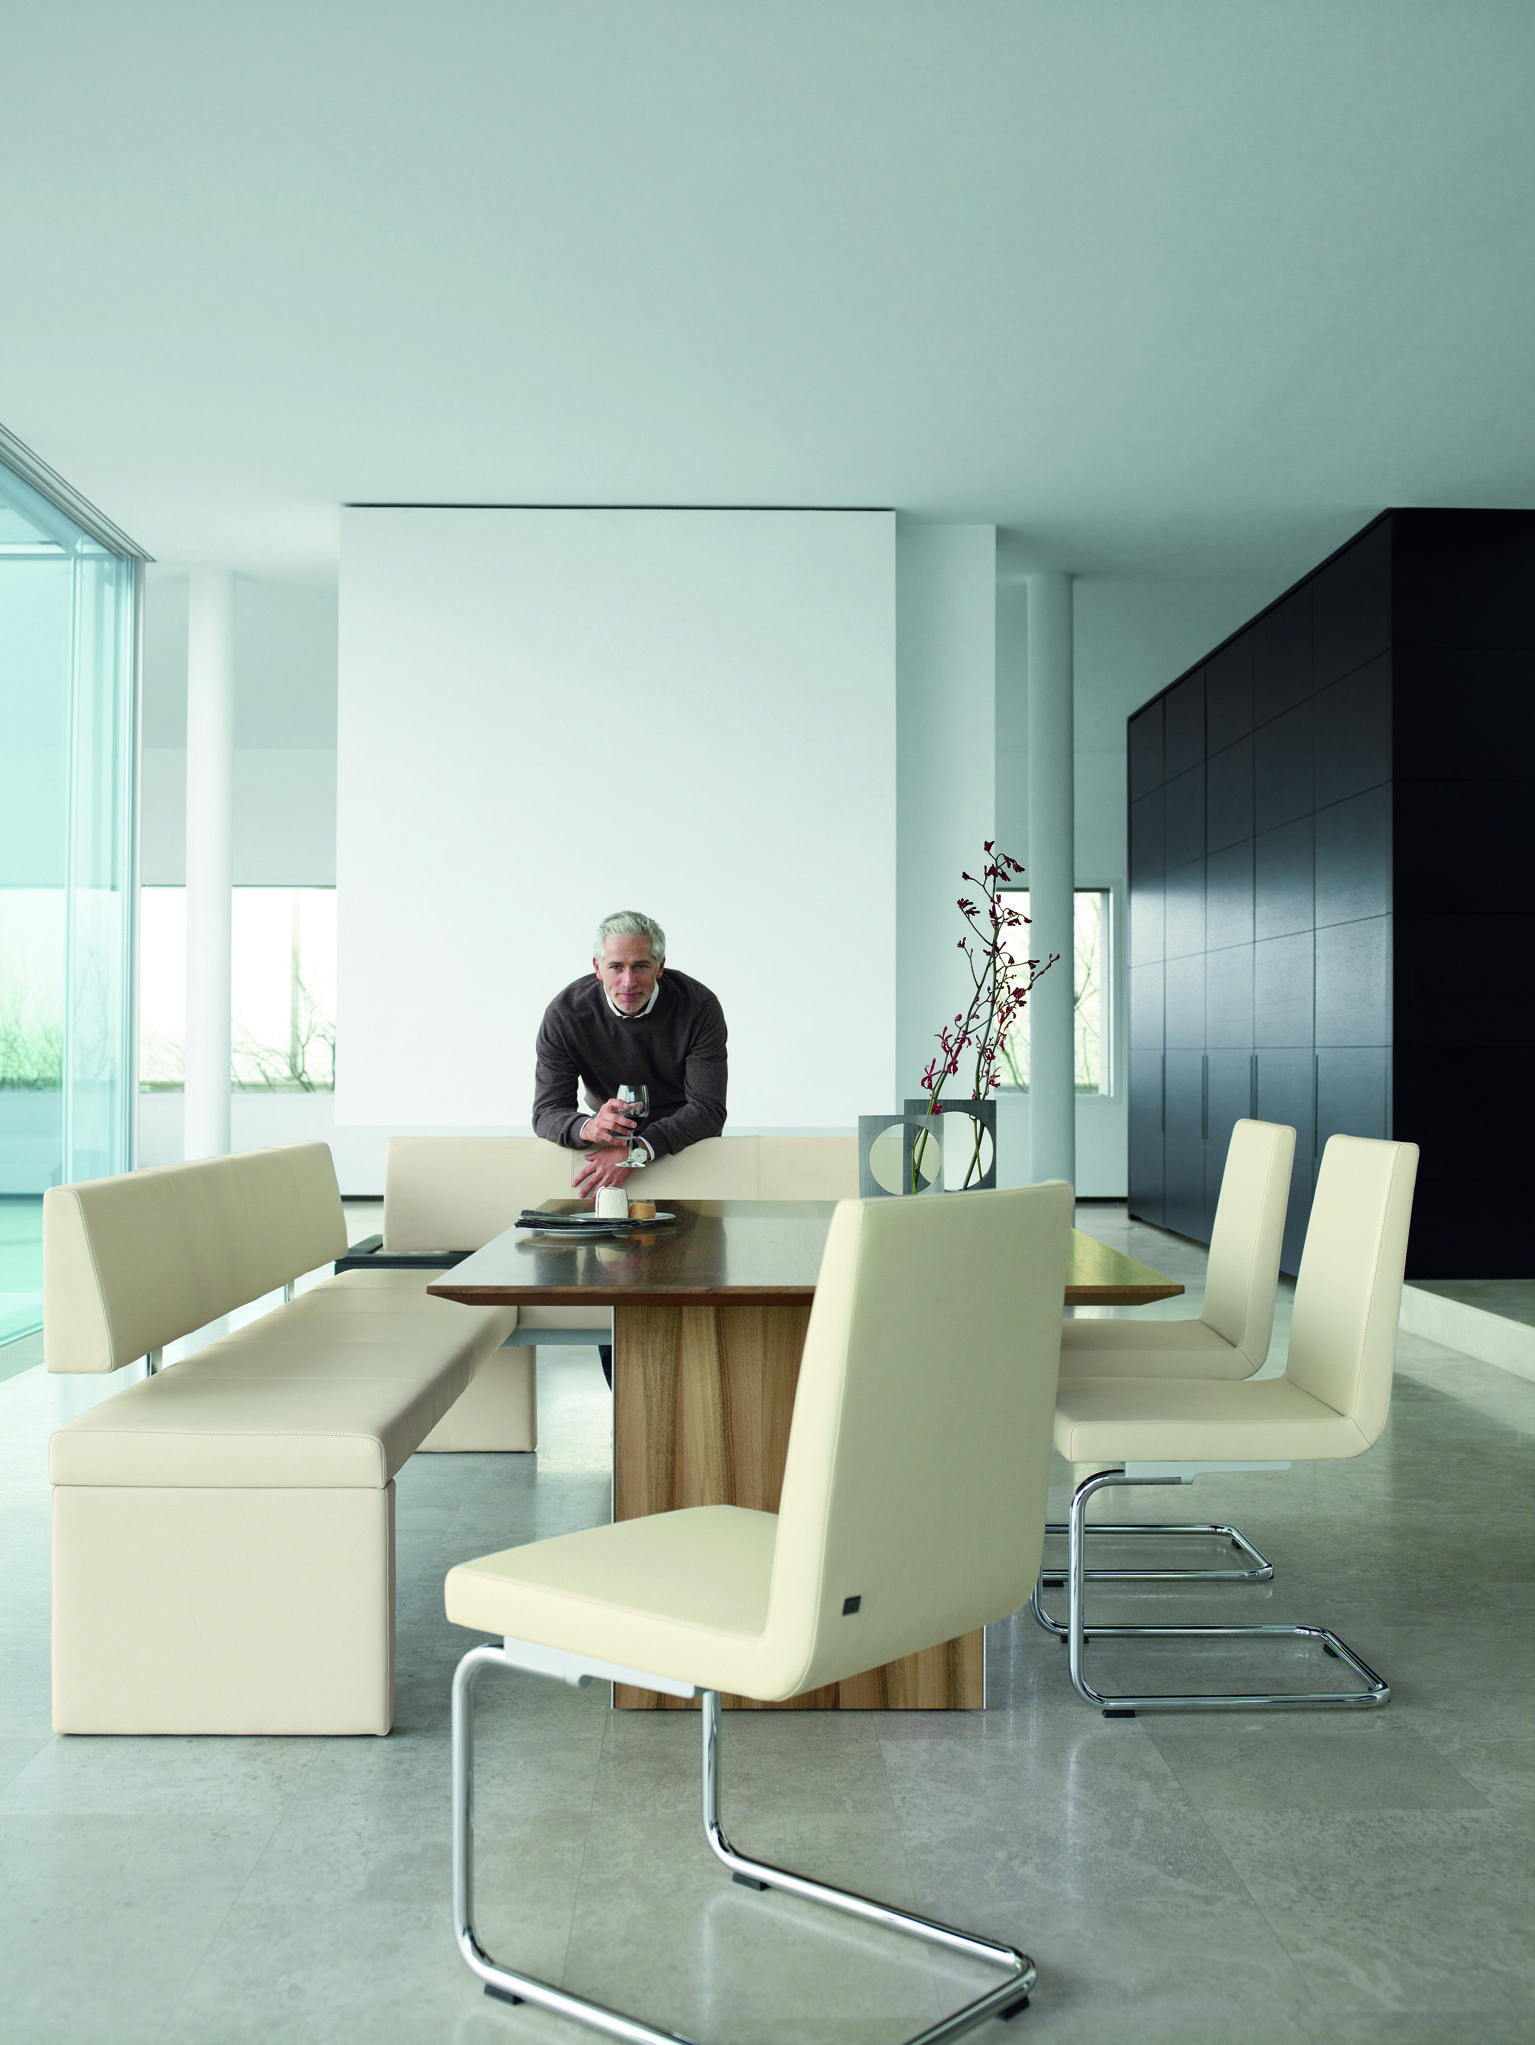 Rolf Benz Bank Design.Studio Anise Rolf Benz 620 Chairs In Stock At Studio Anise And